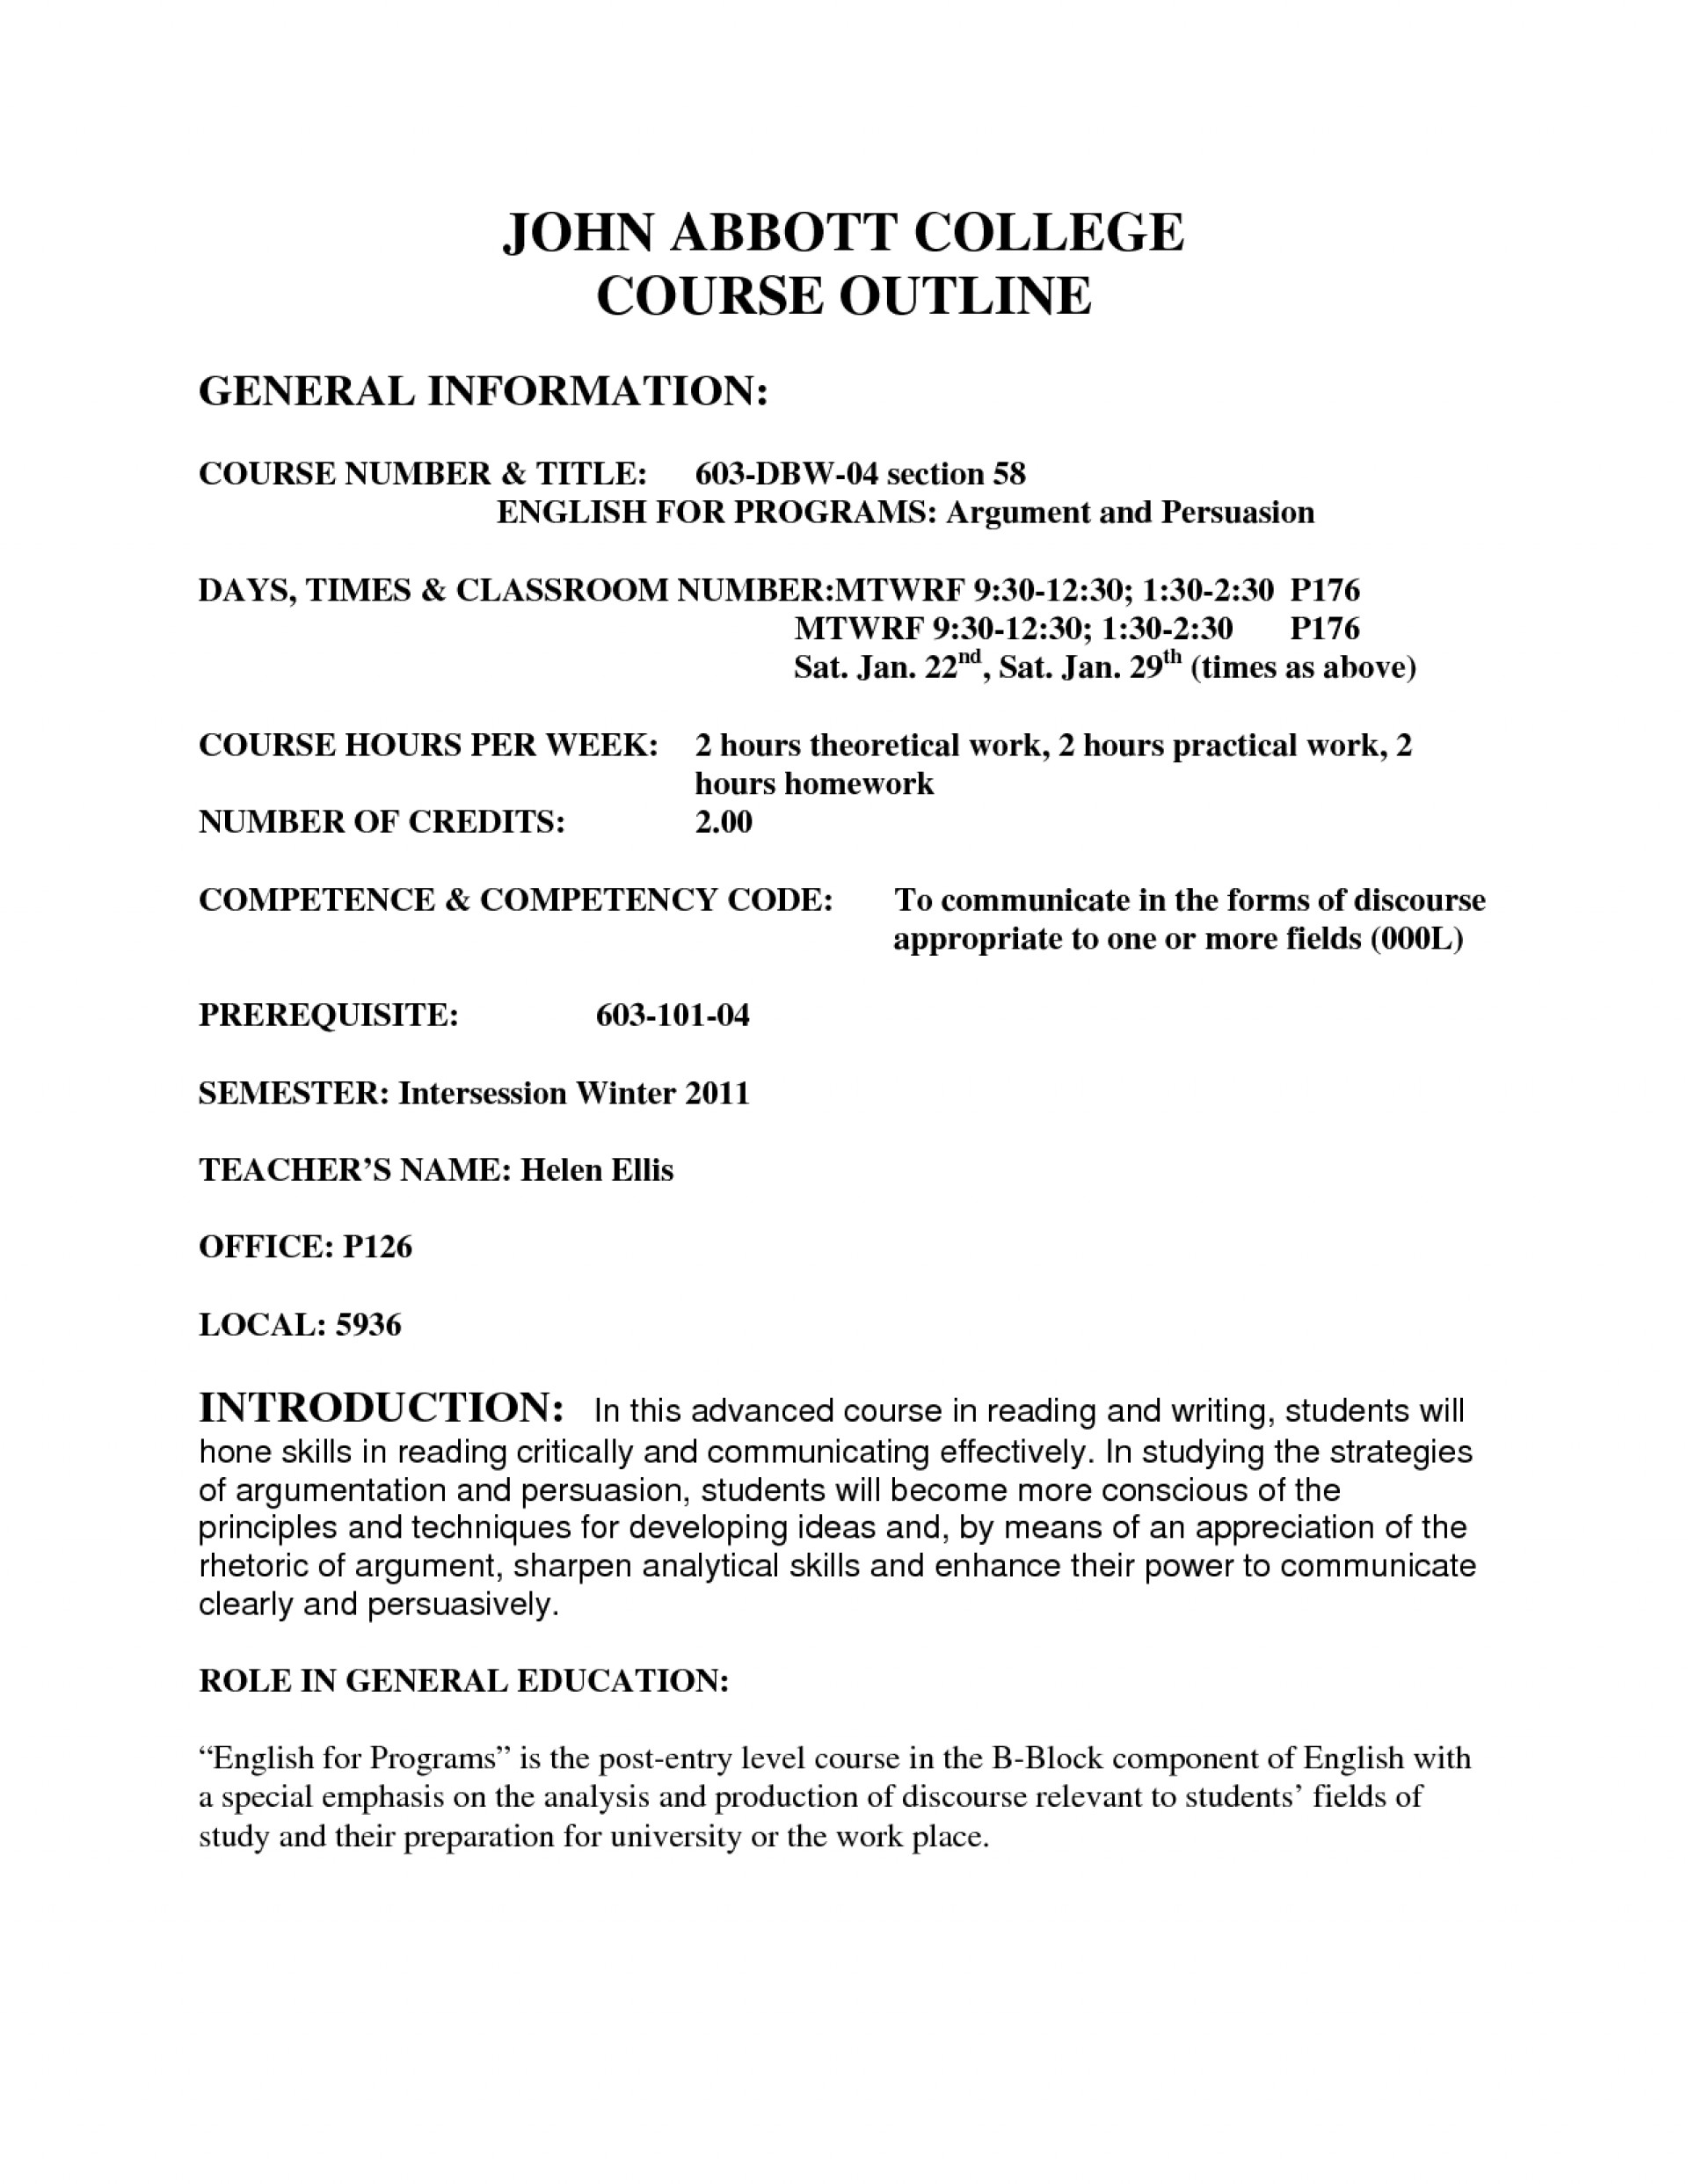 011 Writing College Essay Outline Term Paper Writer Service L Striking Heading Format Example Template Pdf Research 1920